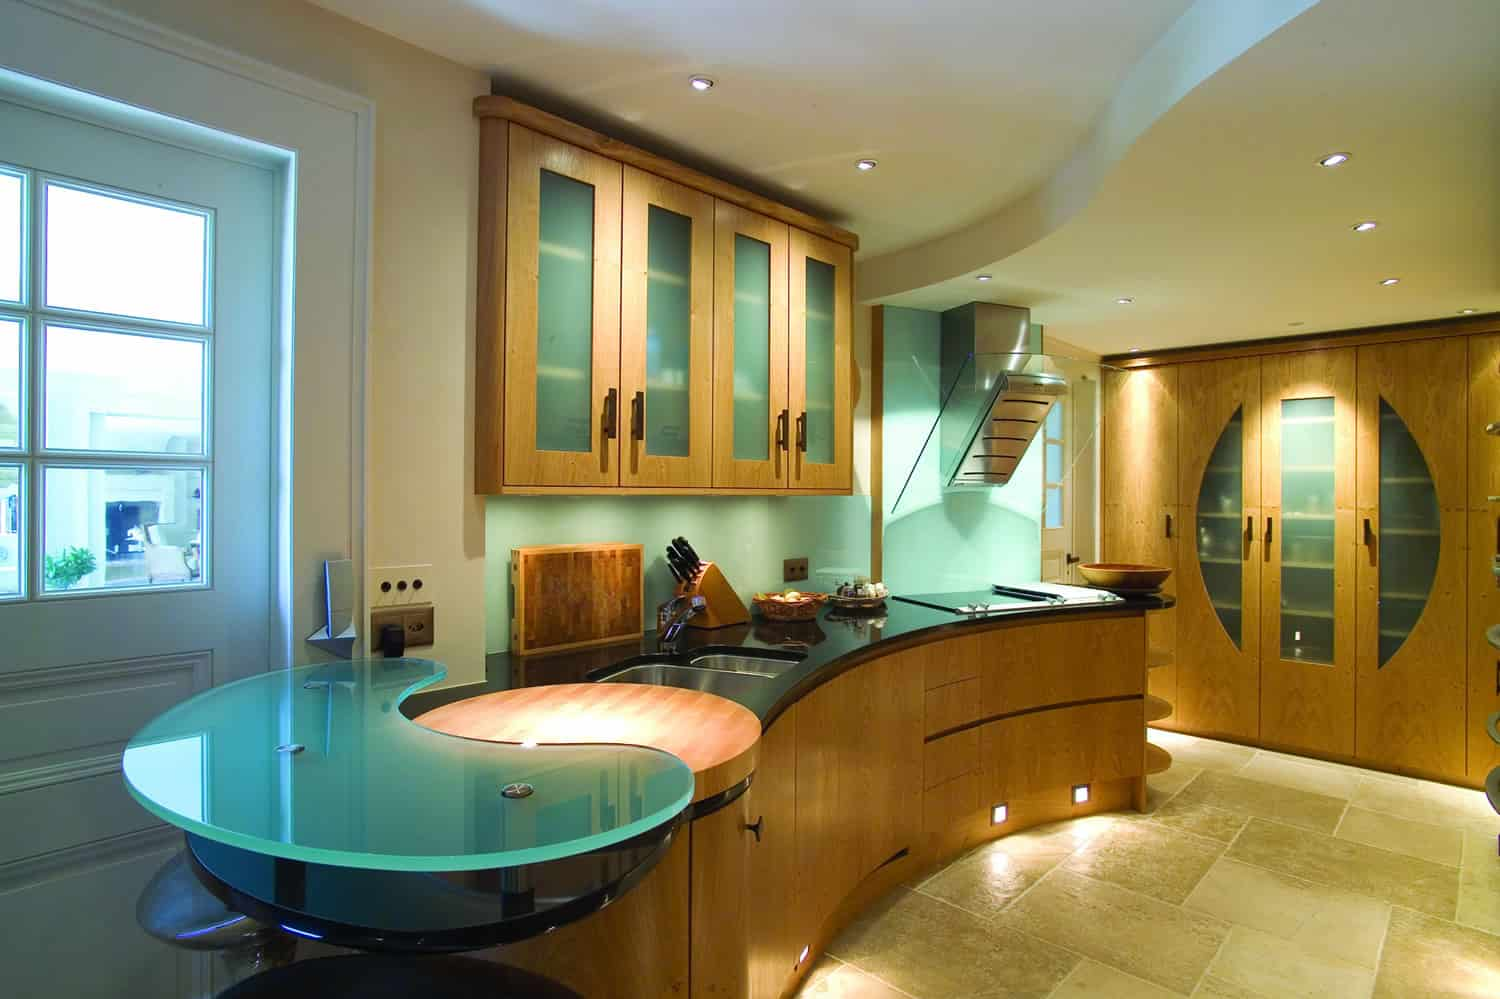 how to build your own kitchen island glass door cabinets modern countertops from unusual materials: 30 ideas